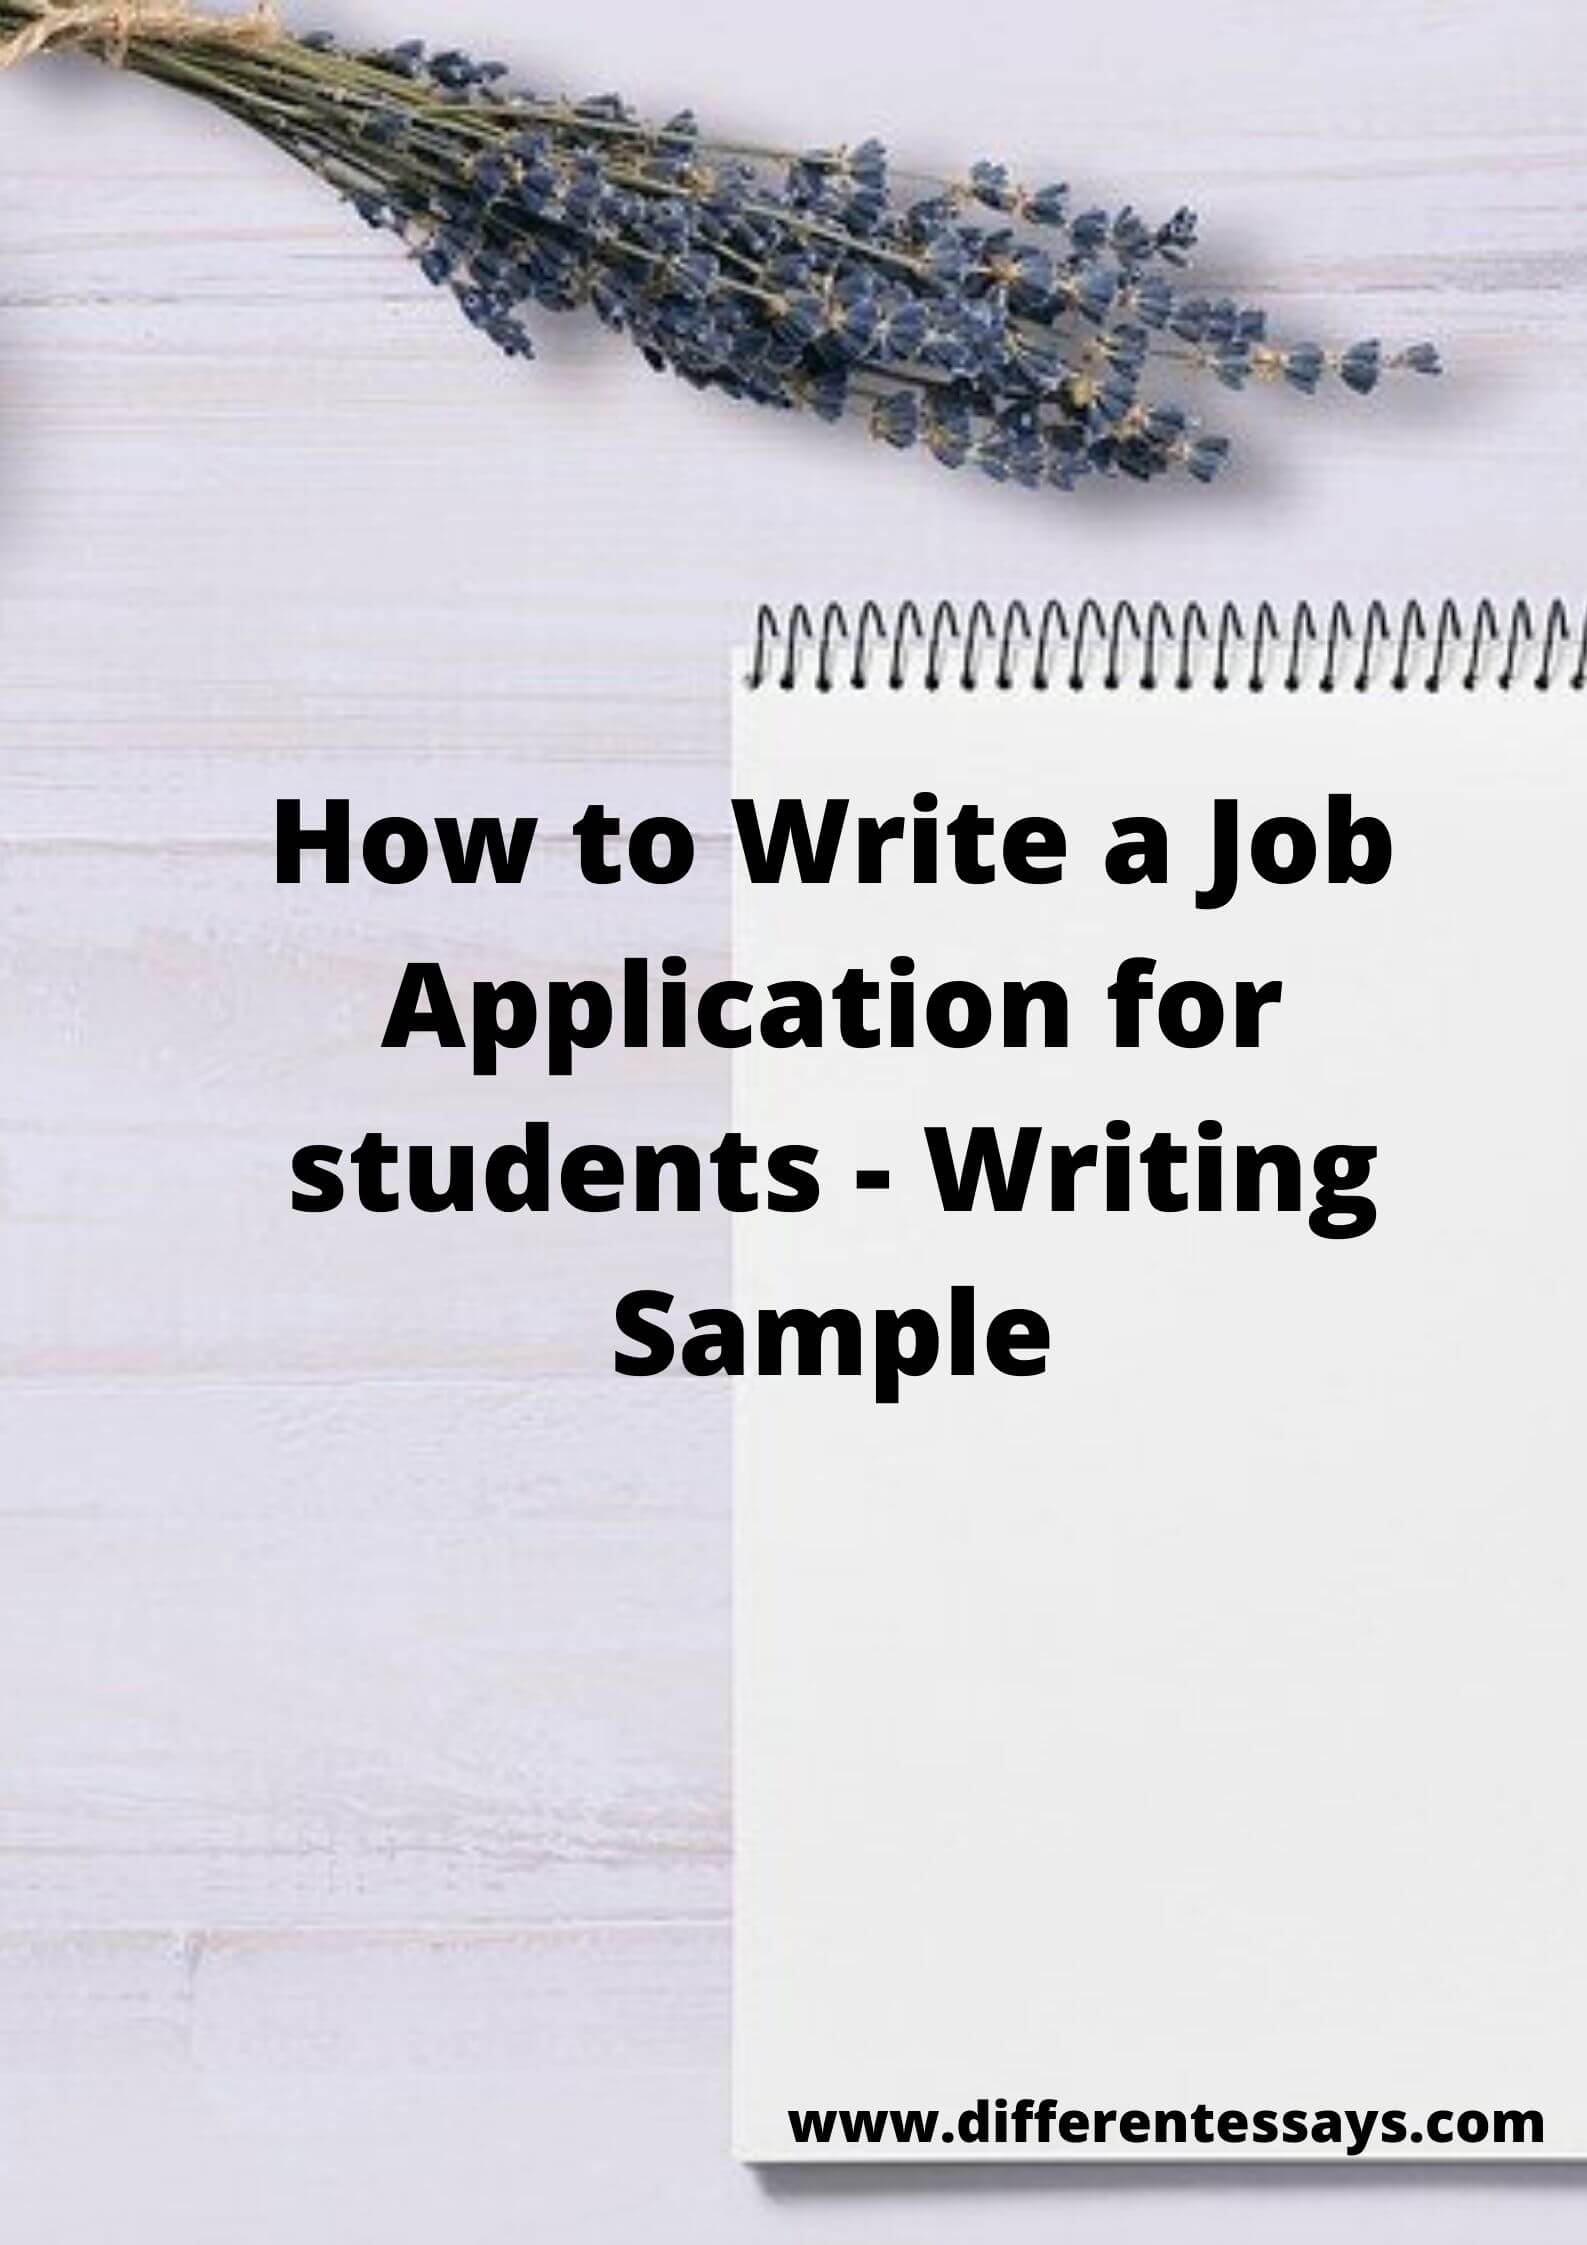 How to Write a Job Application for students - Writing Sample